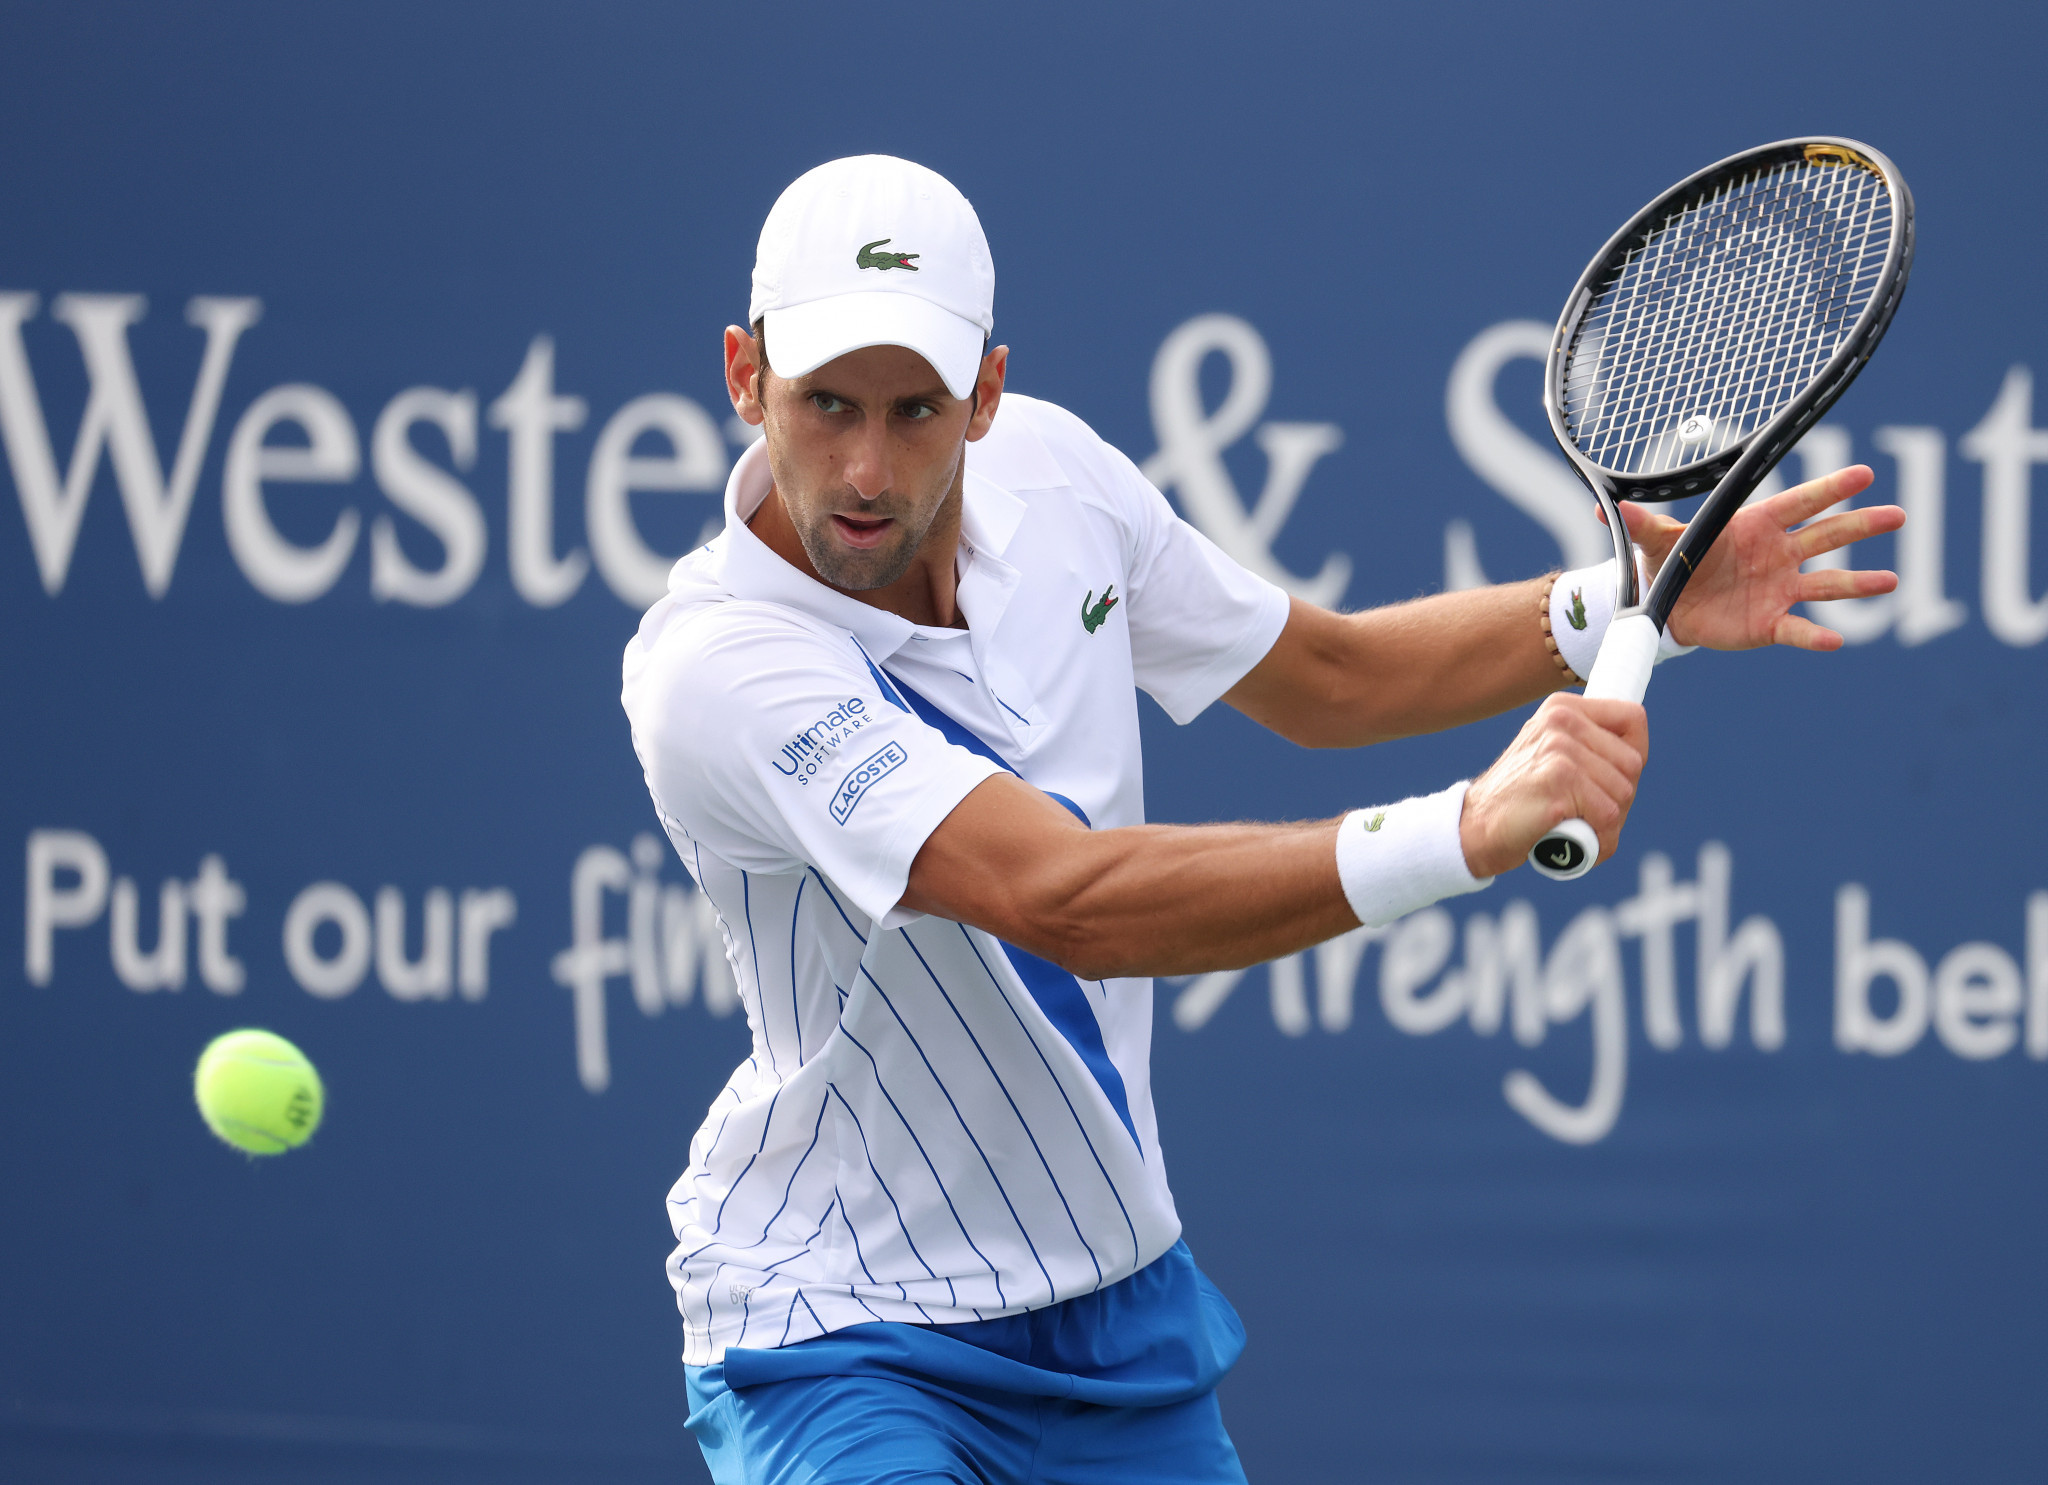 Novak Djokovic will target a fourth US Open title ©Getty Images